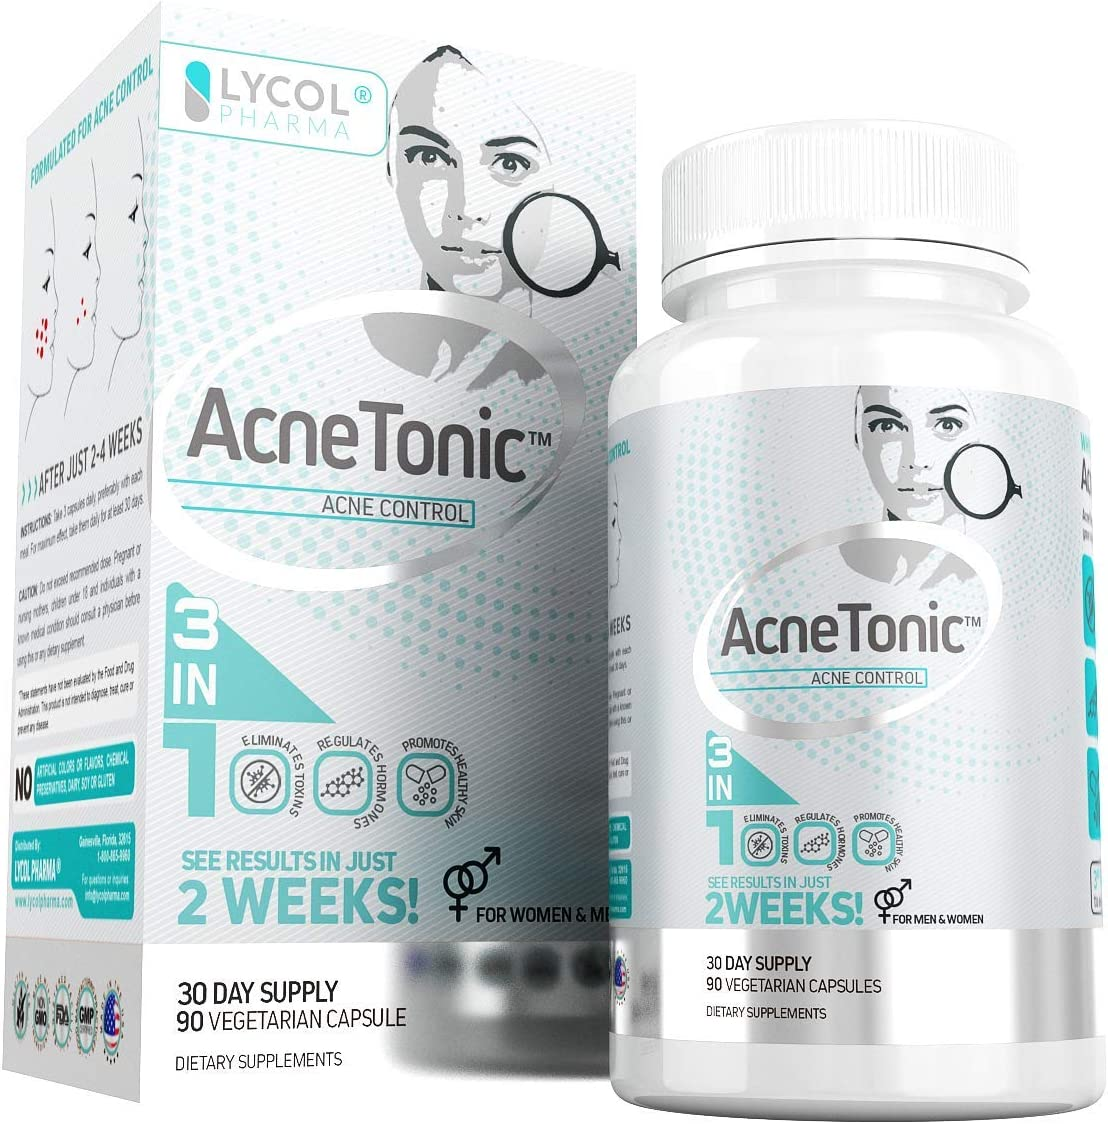 Acne Treatment Supplement Skin Tonic Powerful Antioxidant and Advanced Formula for Teens, Men and Women Highly Effective Acne Vitamins with Neem Powder Non-GMO Grape Seed